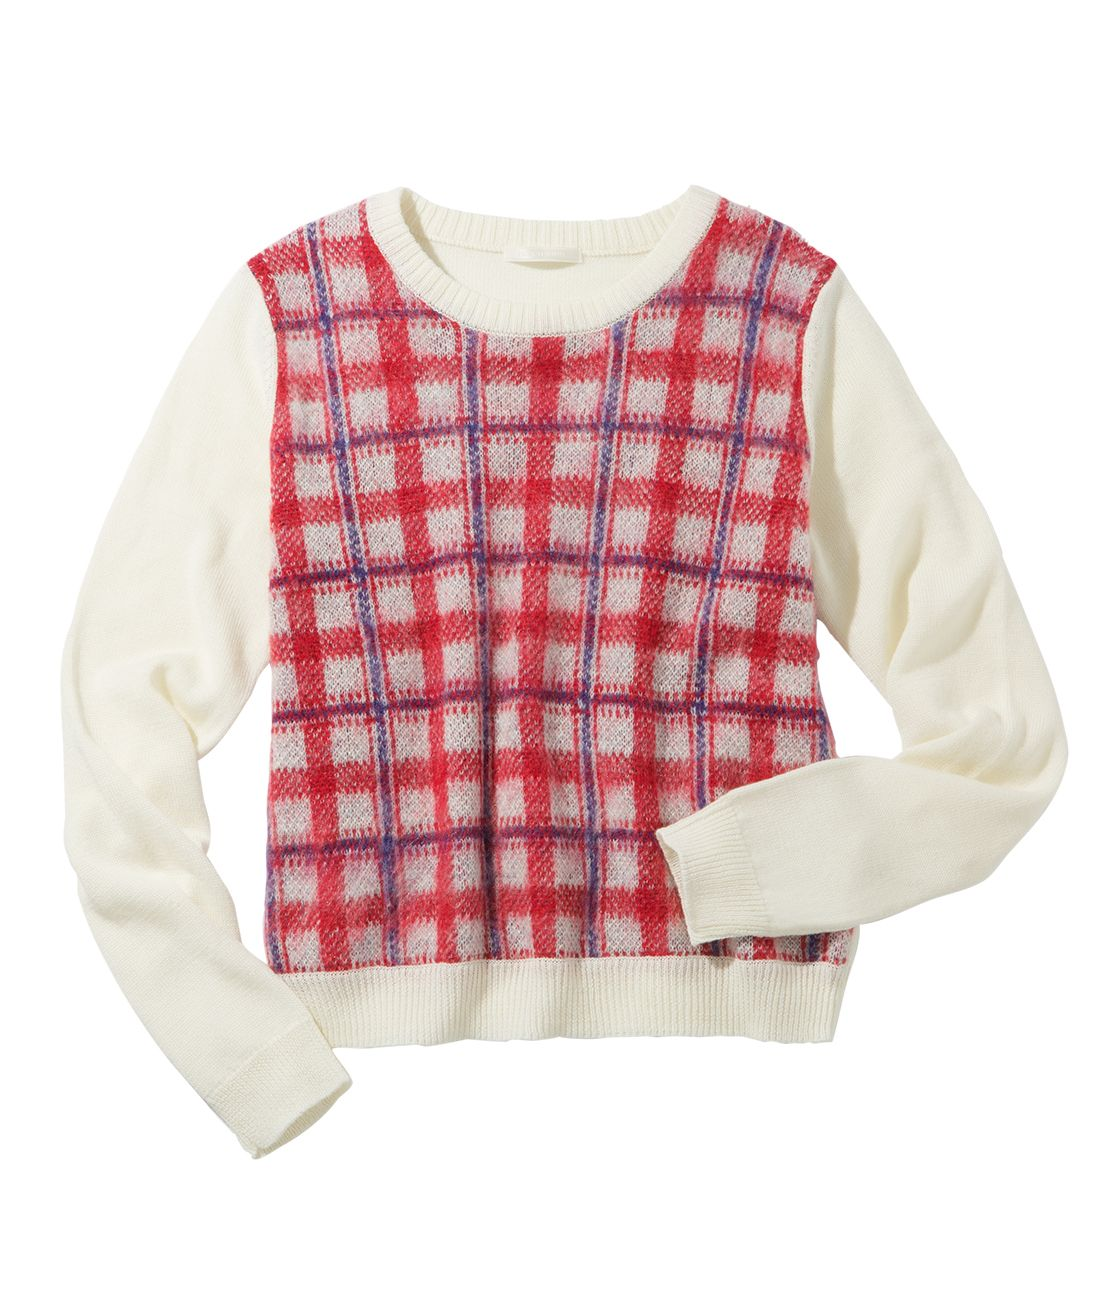 Shaggy check sweater